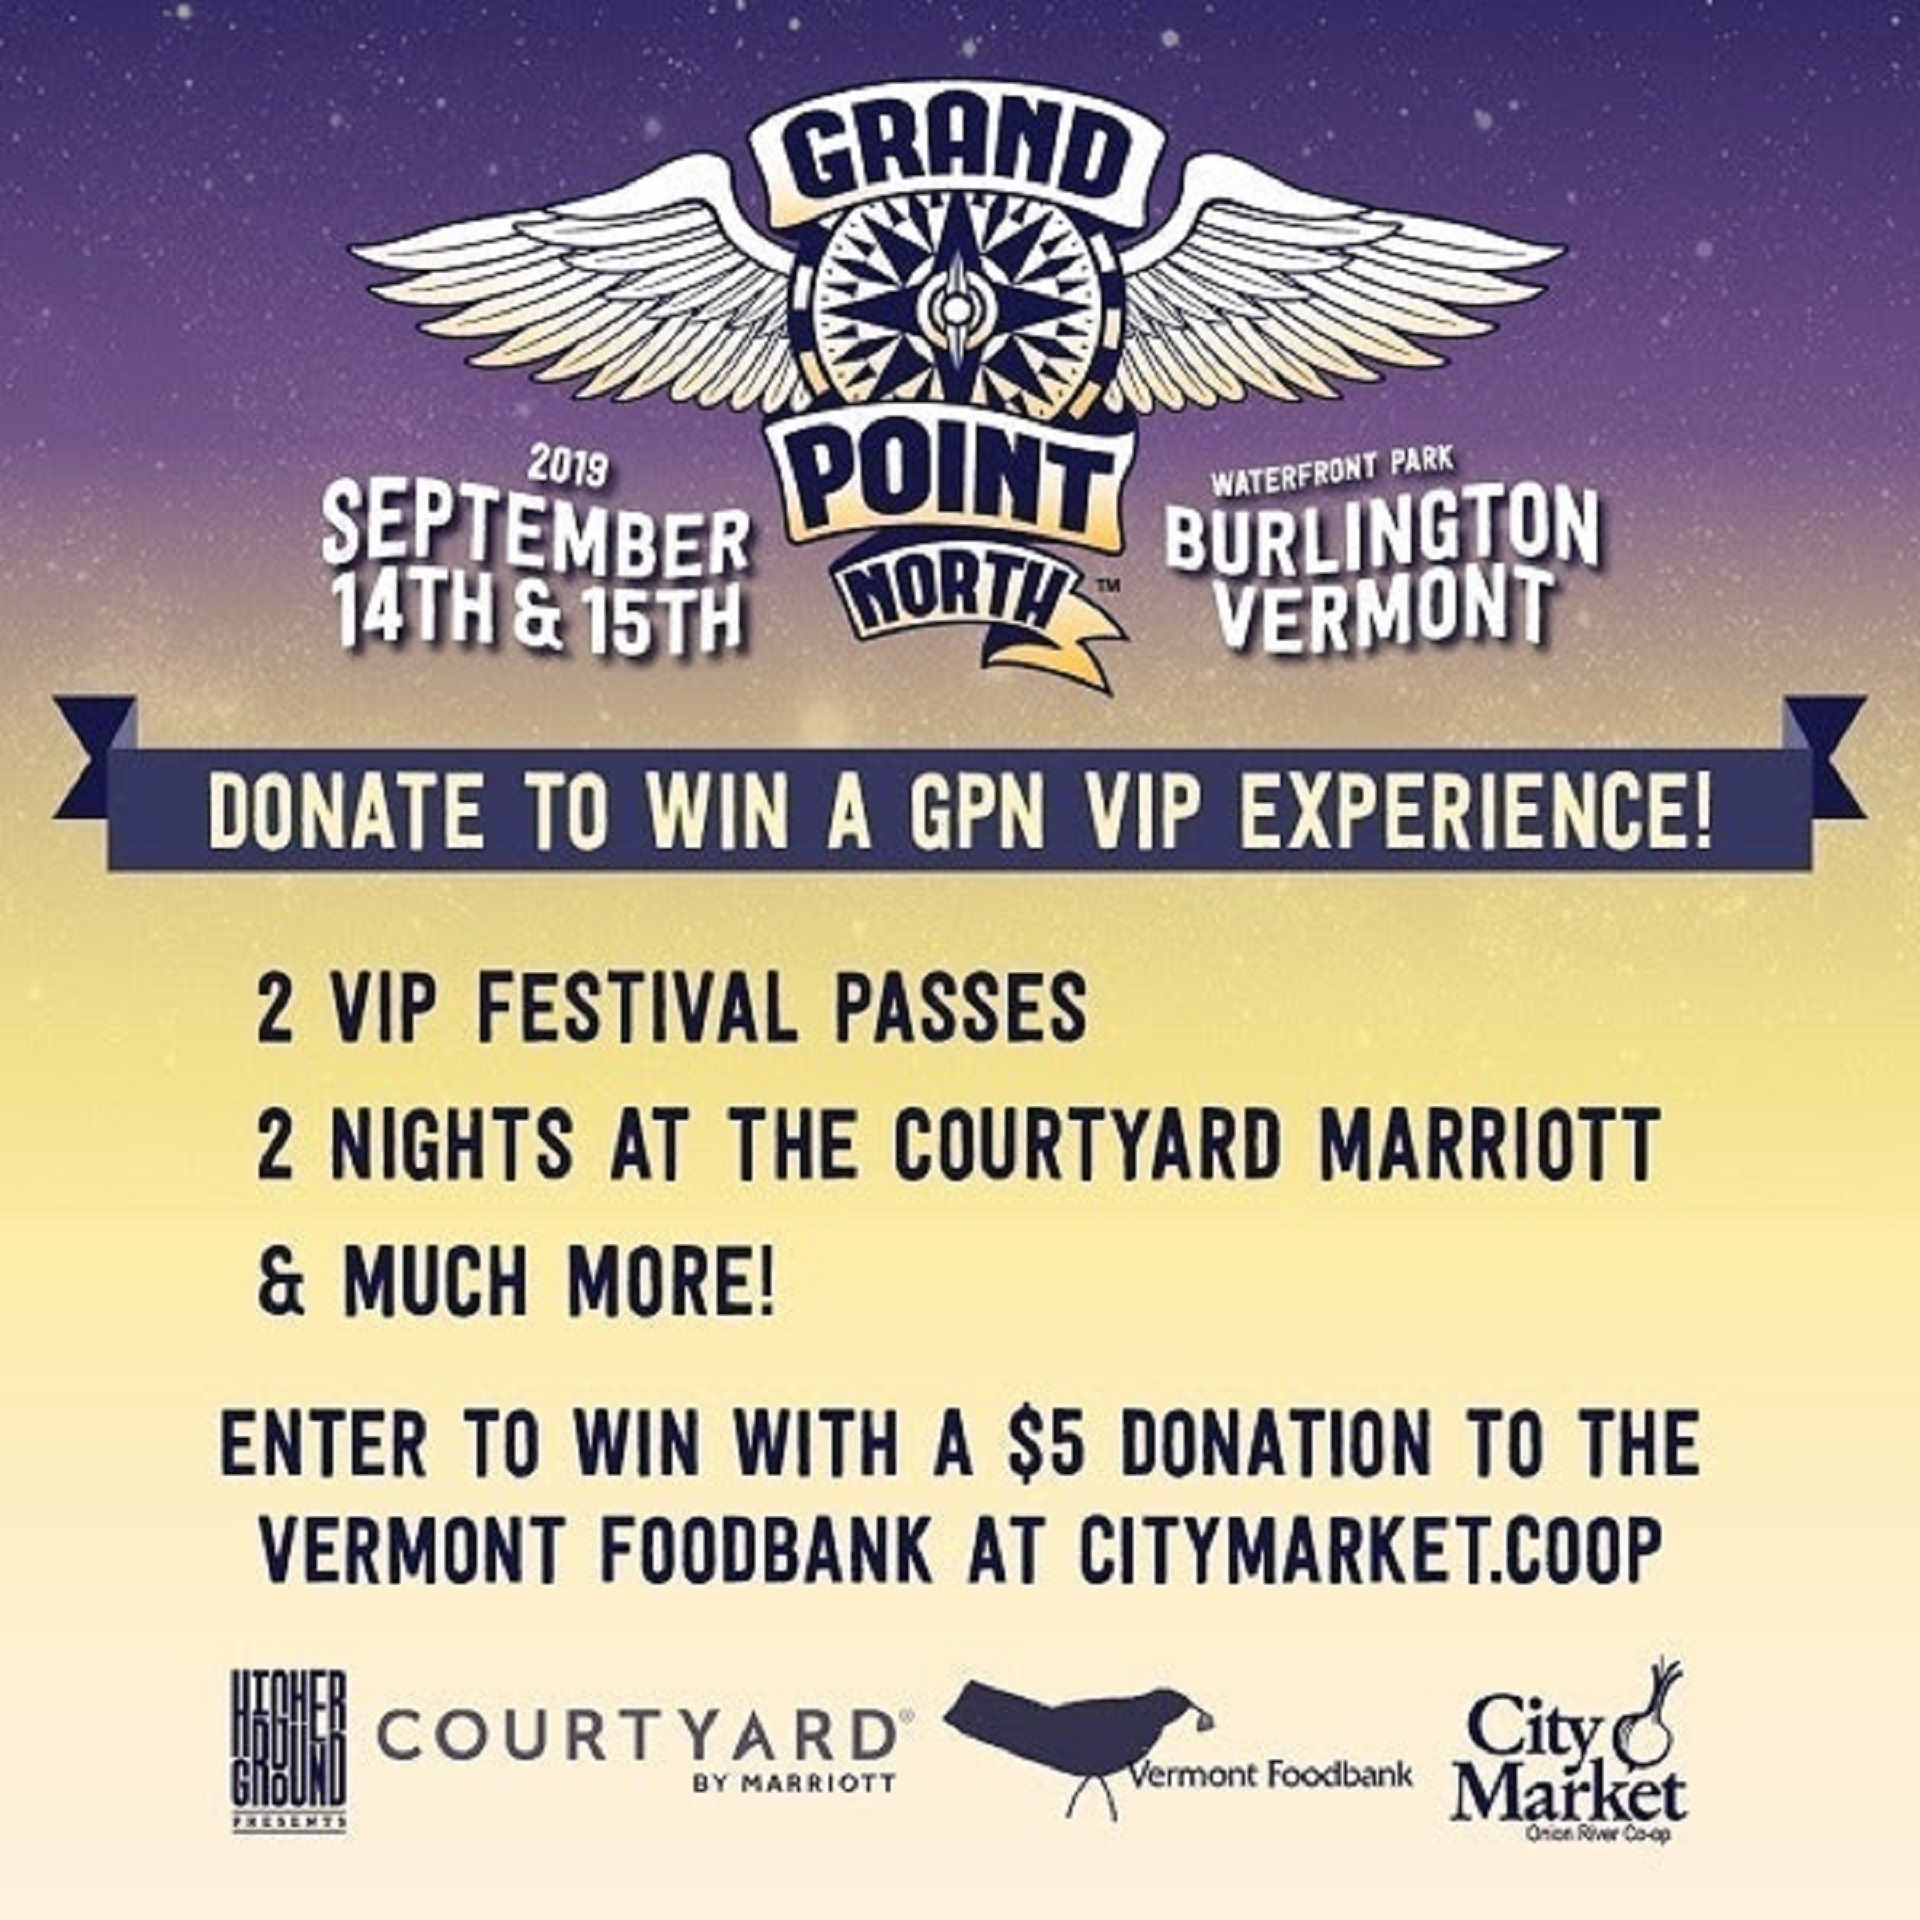 Grand Point North Partners With City Market To Benefit the Vermont Foodbank